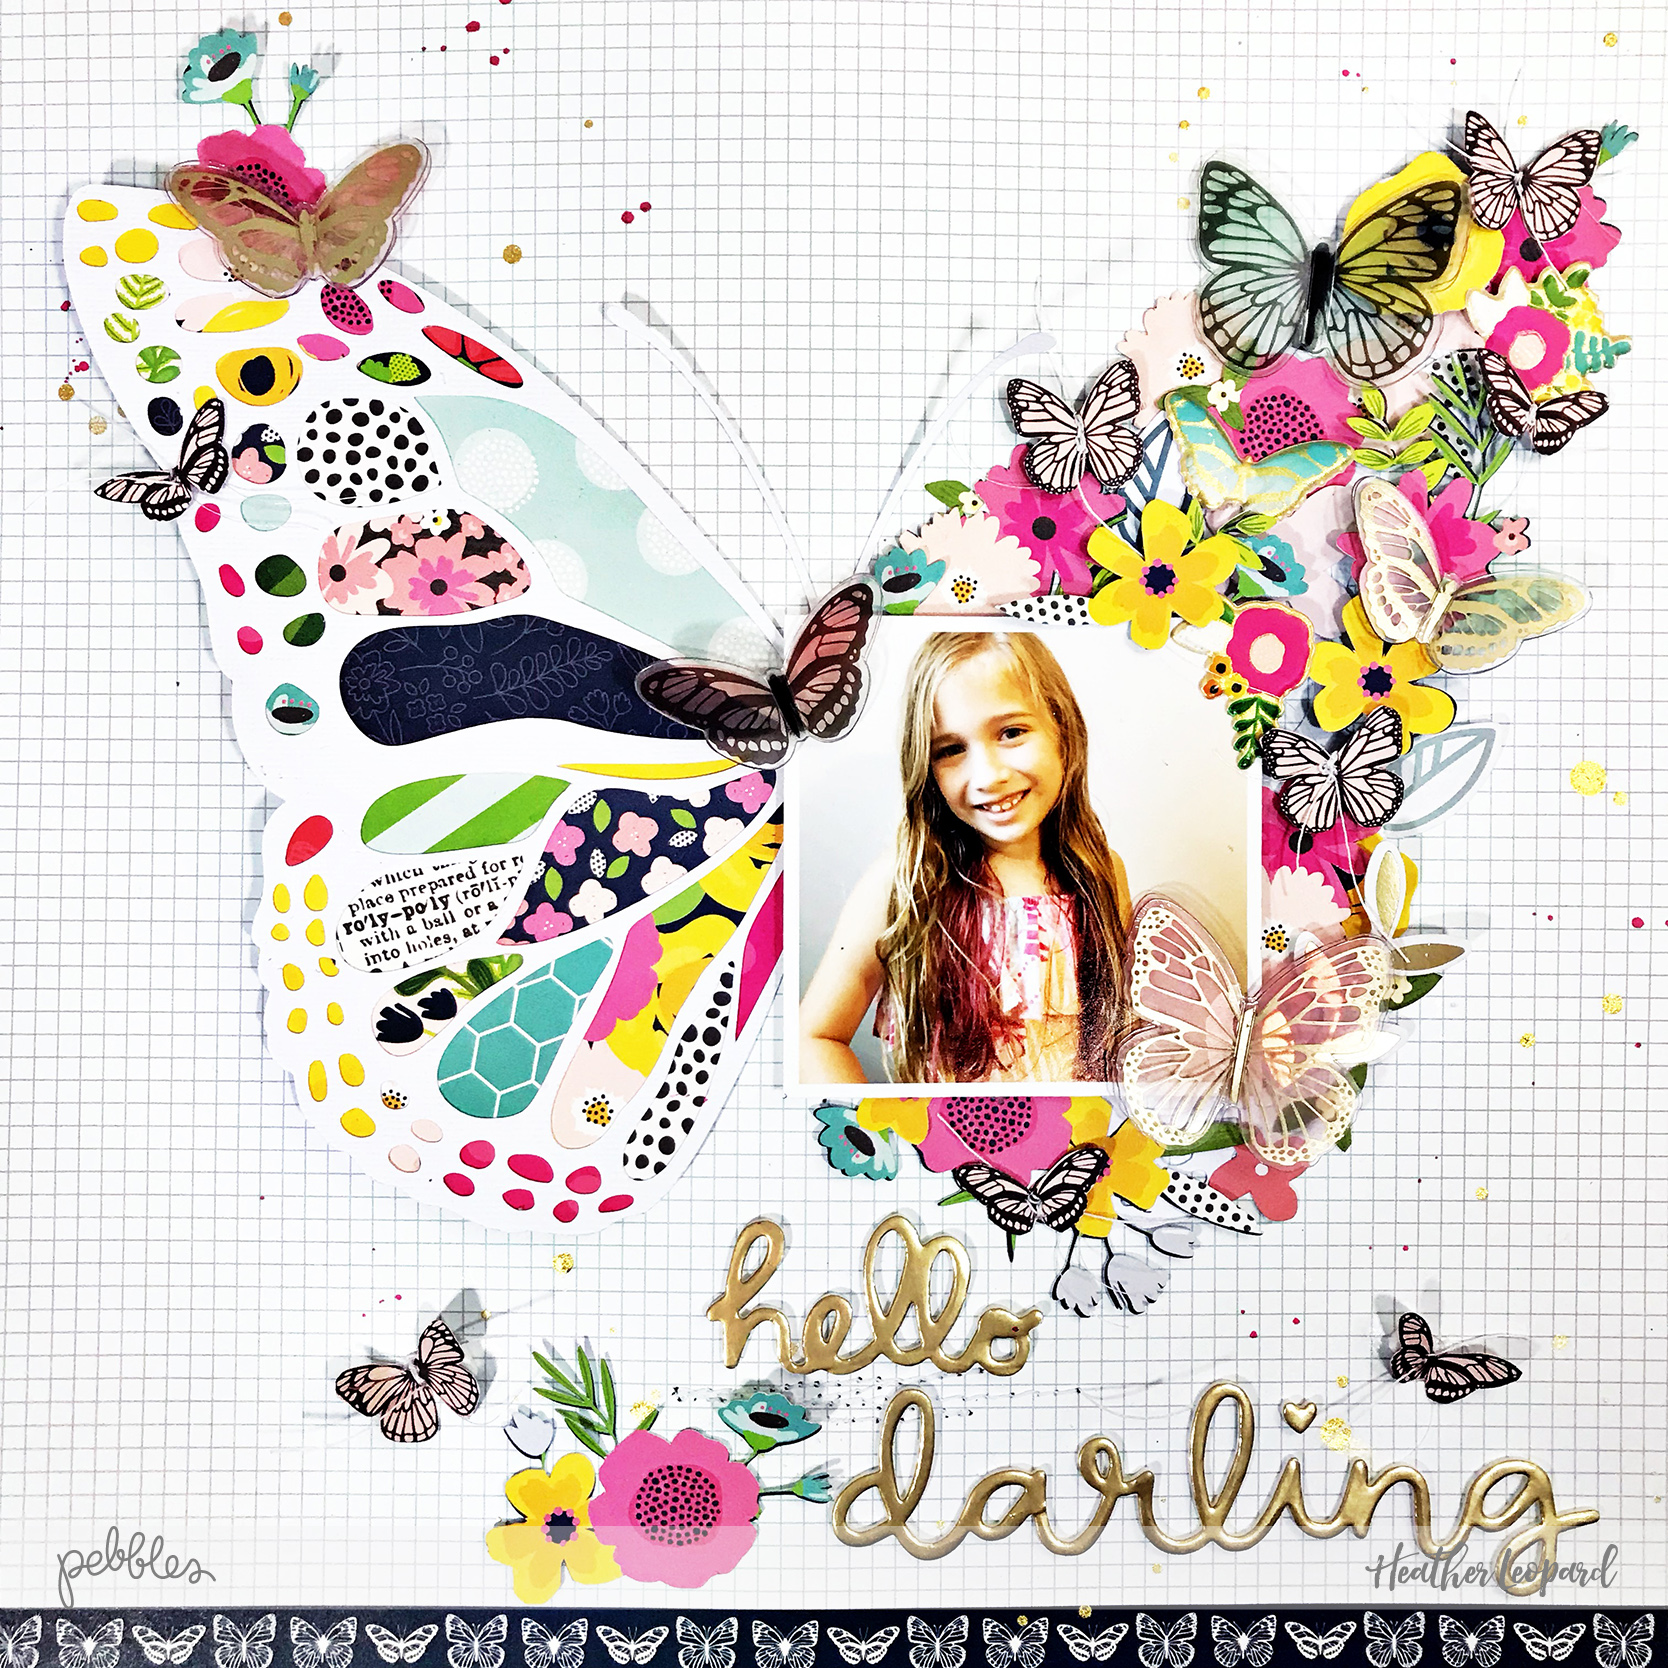 Butterfly scrapbooking layout andprocessvideo by @heatherleopard using @pebblesinc #jenhadfield #patioparty collection #madewithpebbles